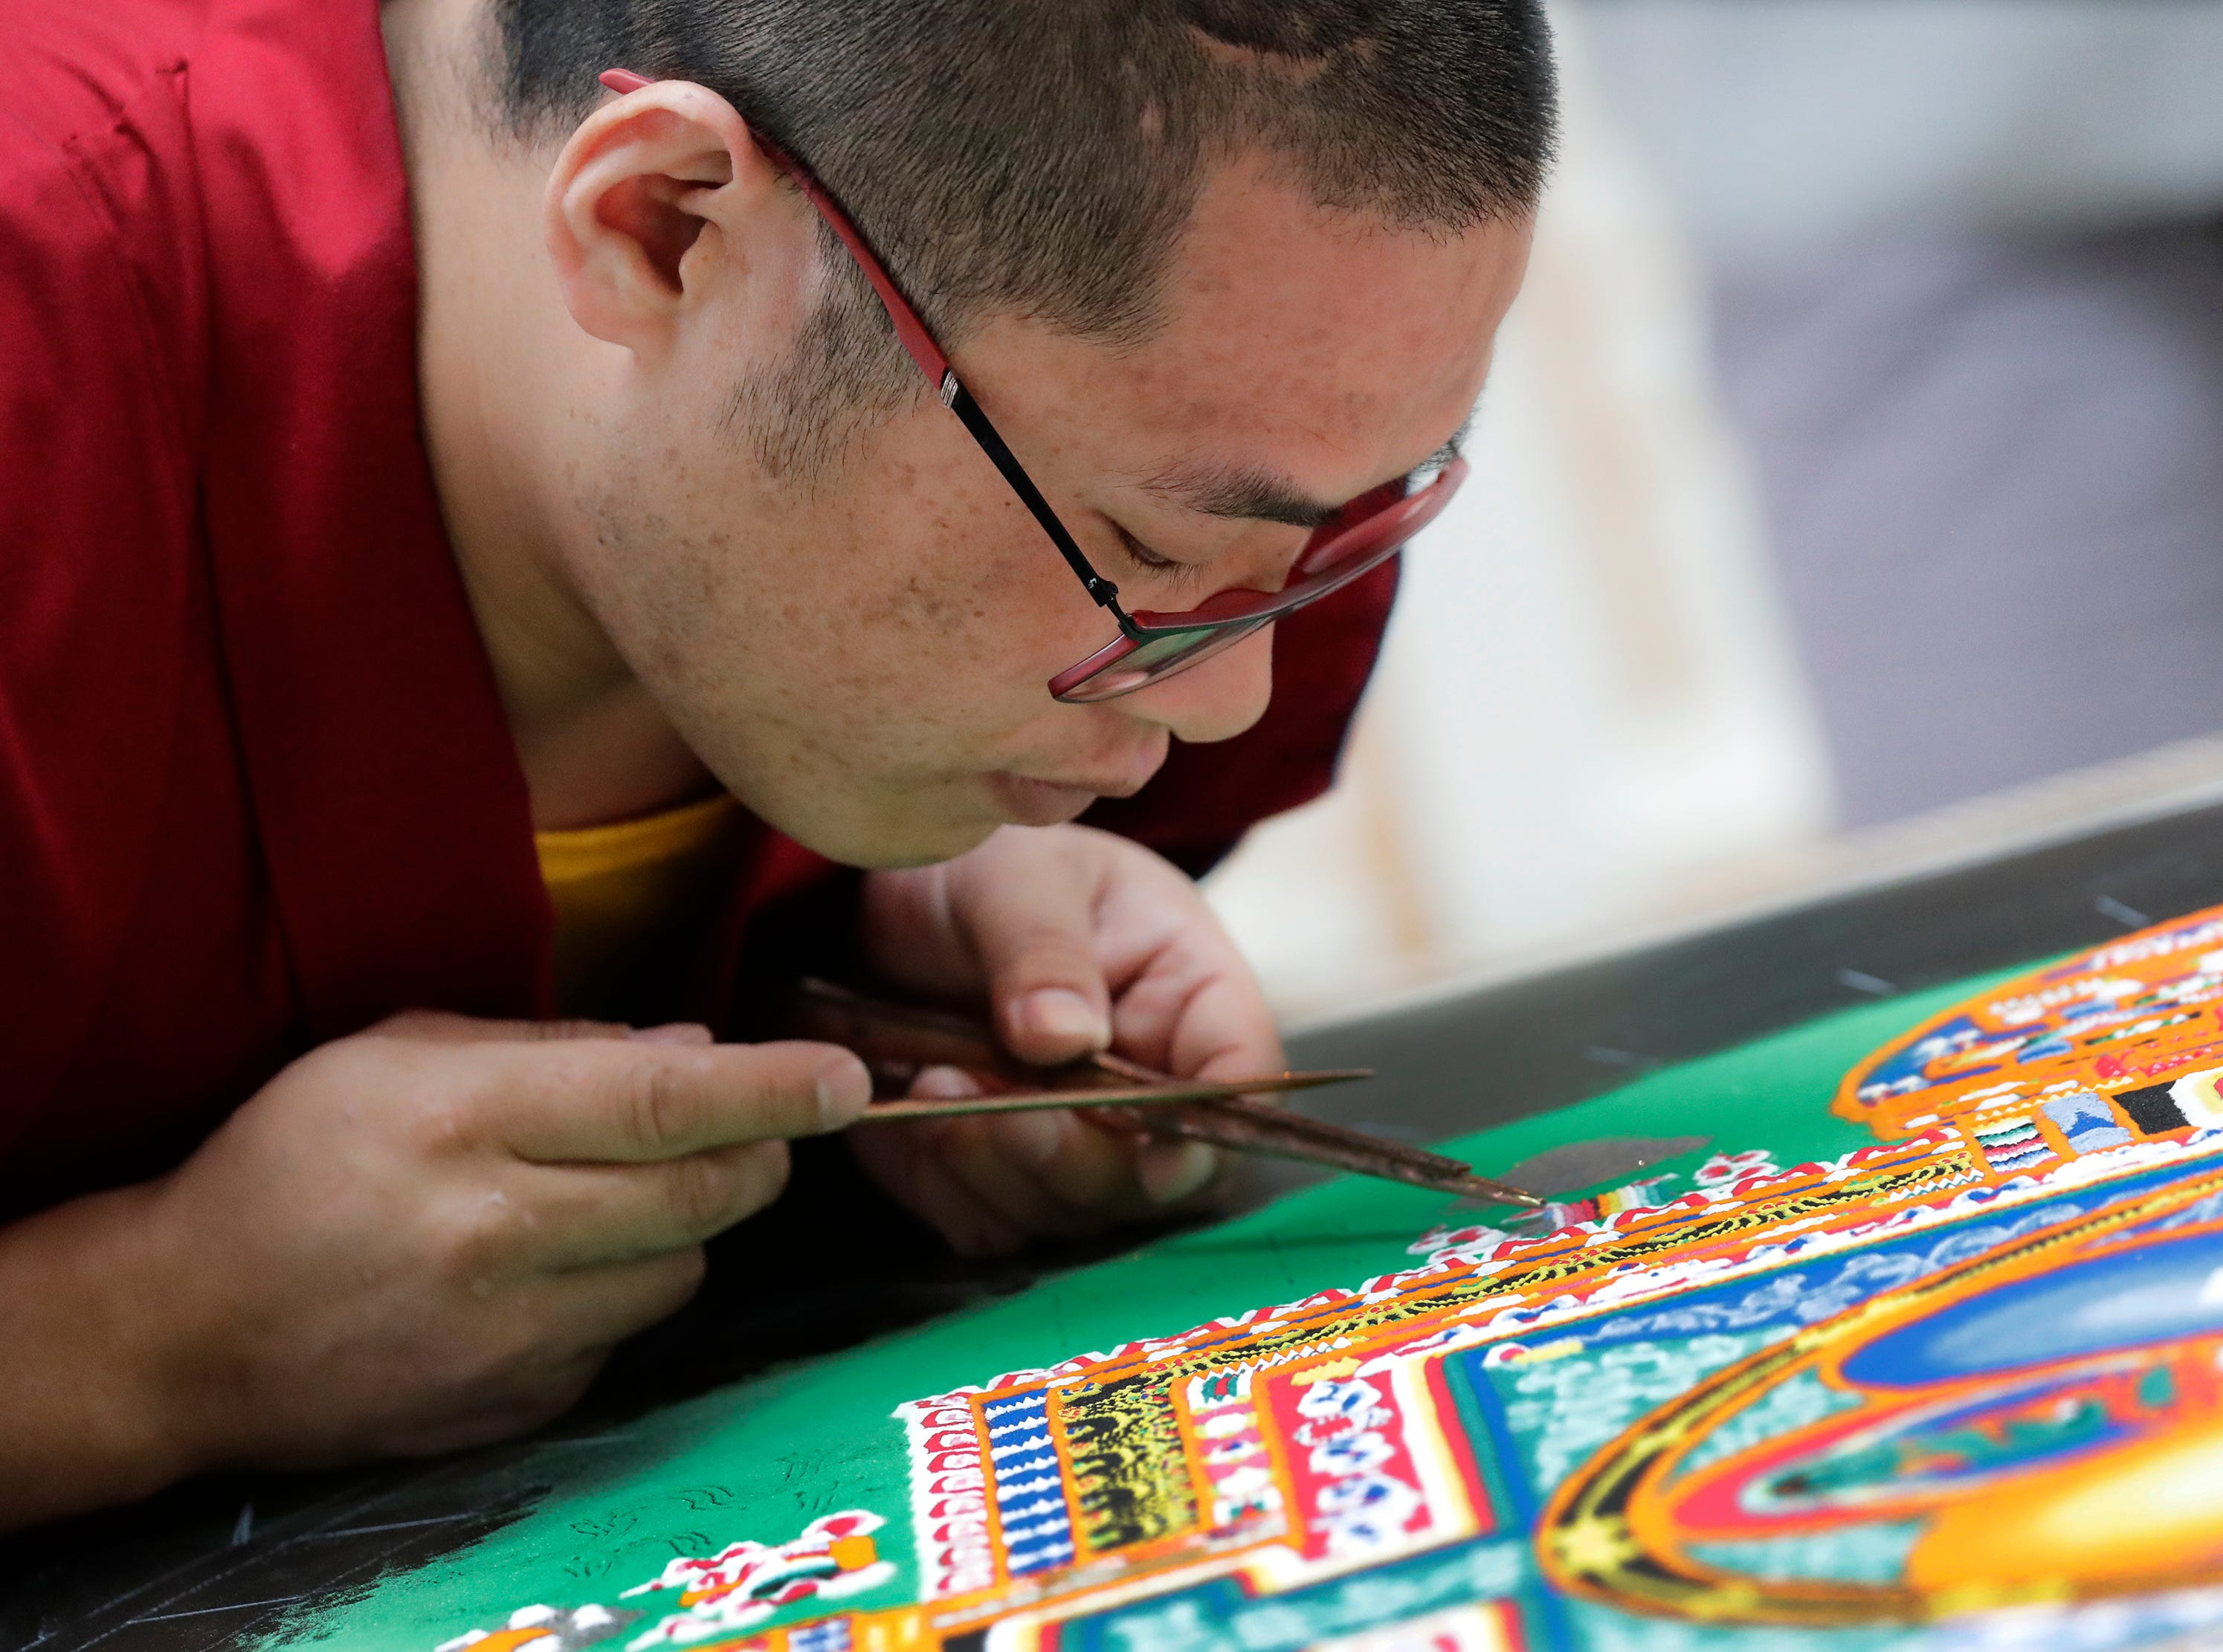 Lobsang Tharchin, a Buddhist monk from Drepung Loseling Monastery in south India, uses a Chak-pur to create a Mandala Thursday Thursday, March 21, 2019, at The Paine Art Center and Gardens in Oshkosh, Wis. Dan Powers/USA TODAY NETWORK-Wisconsin